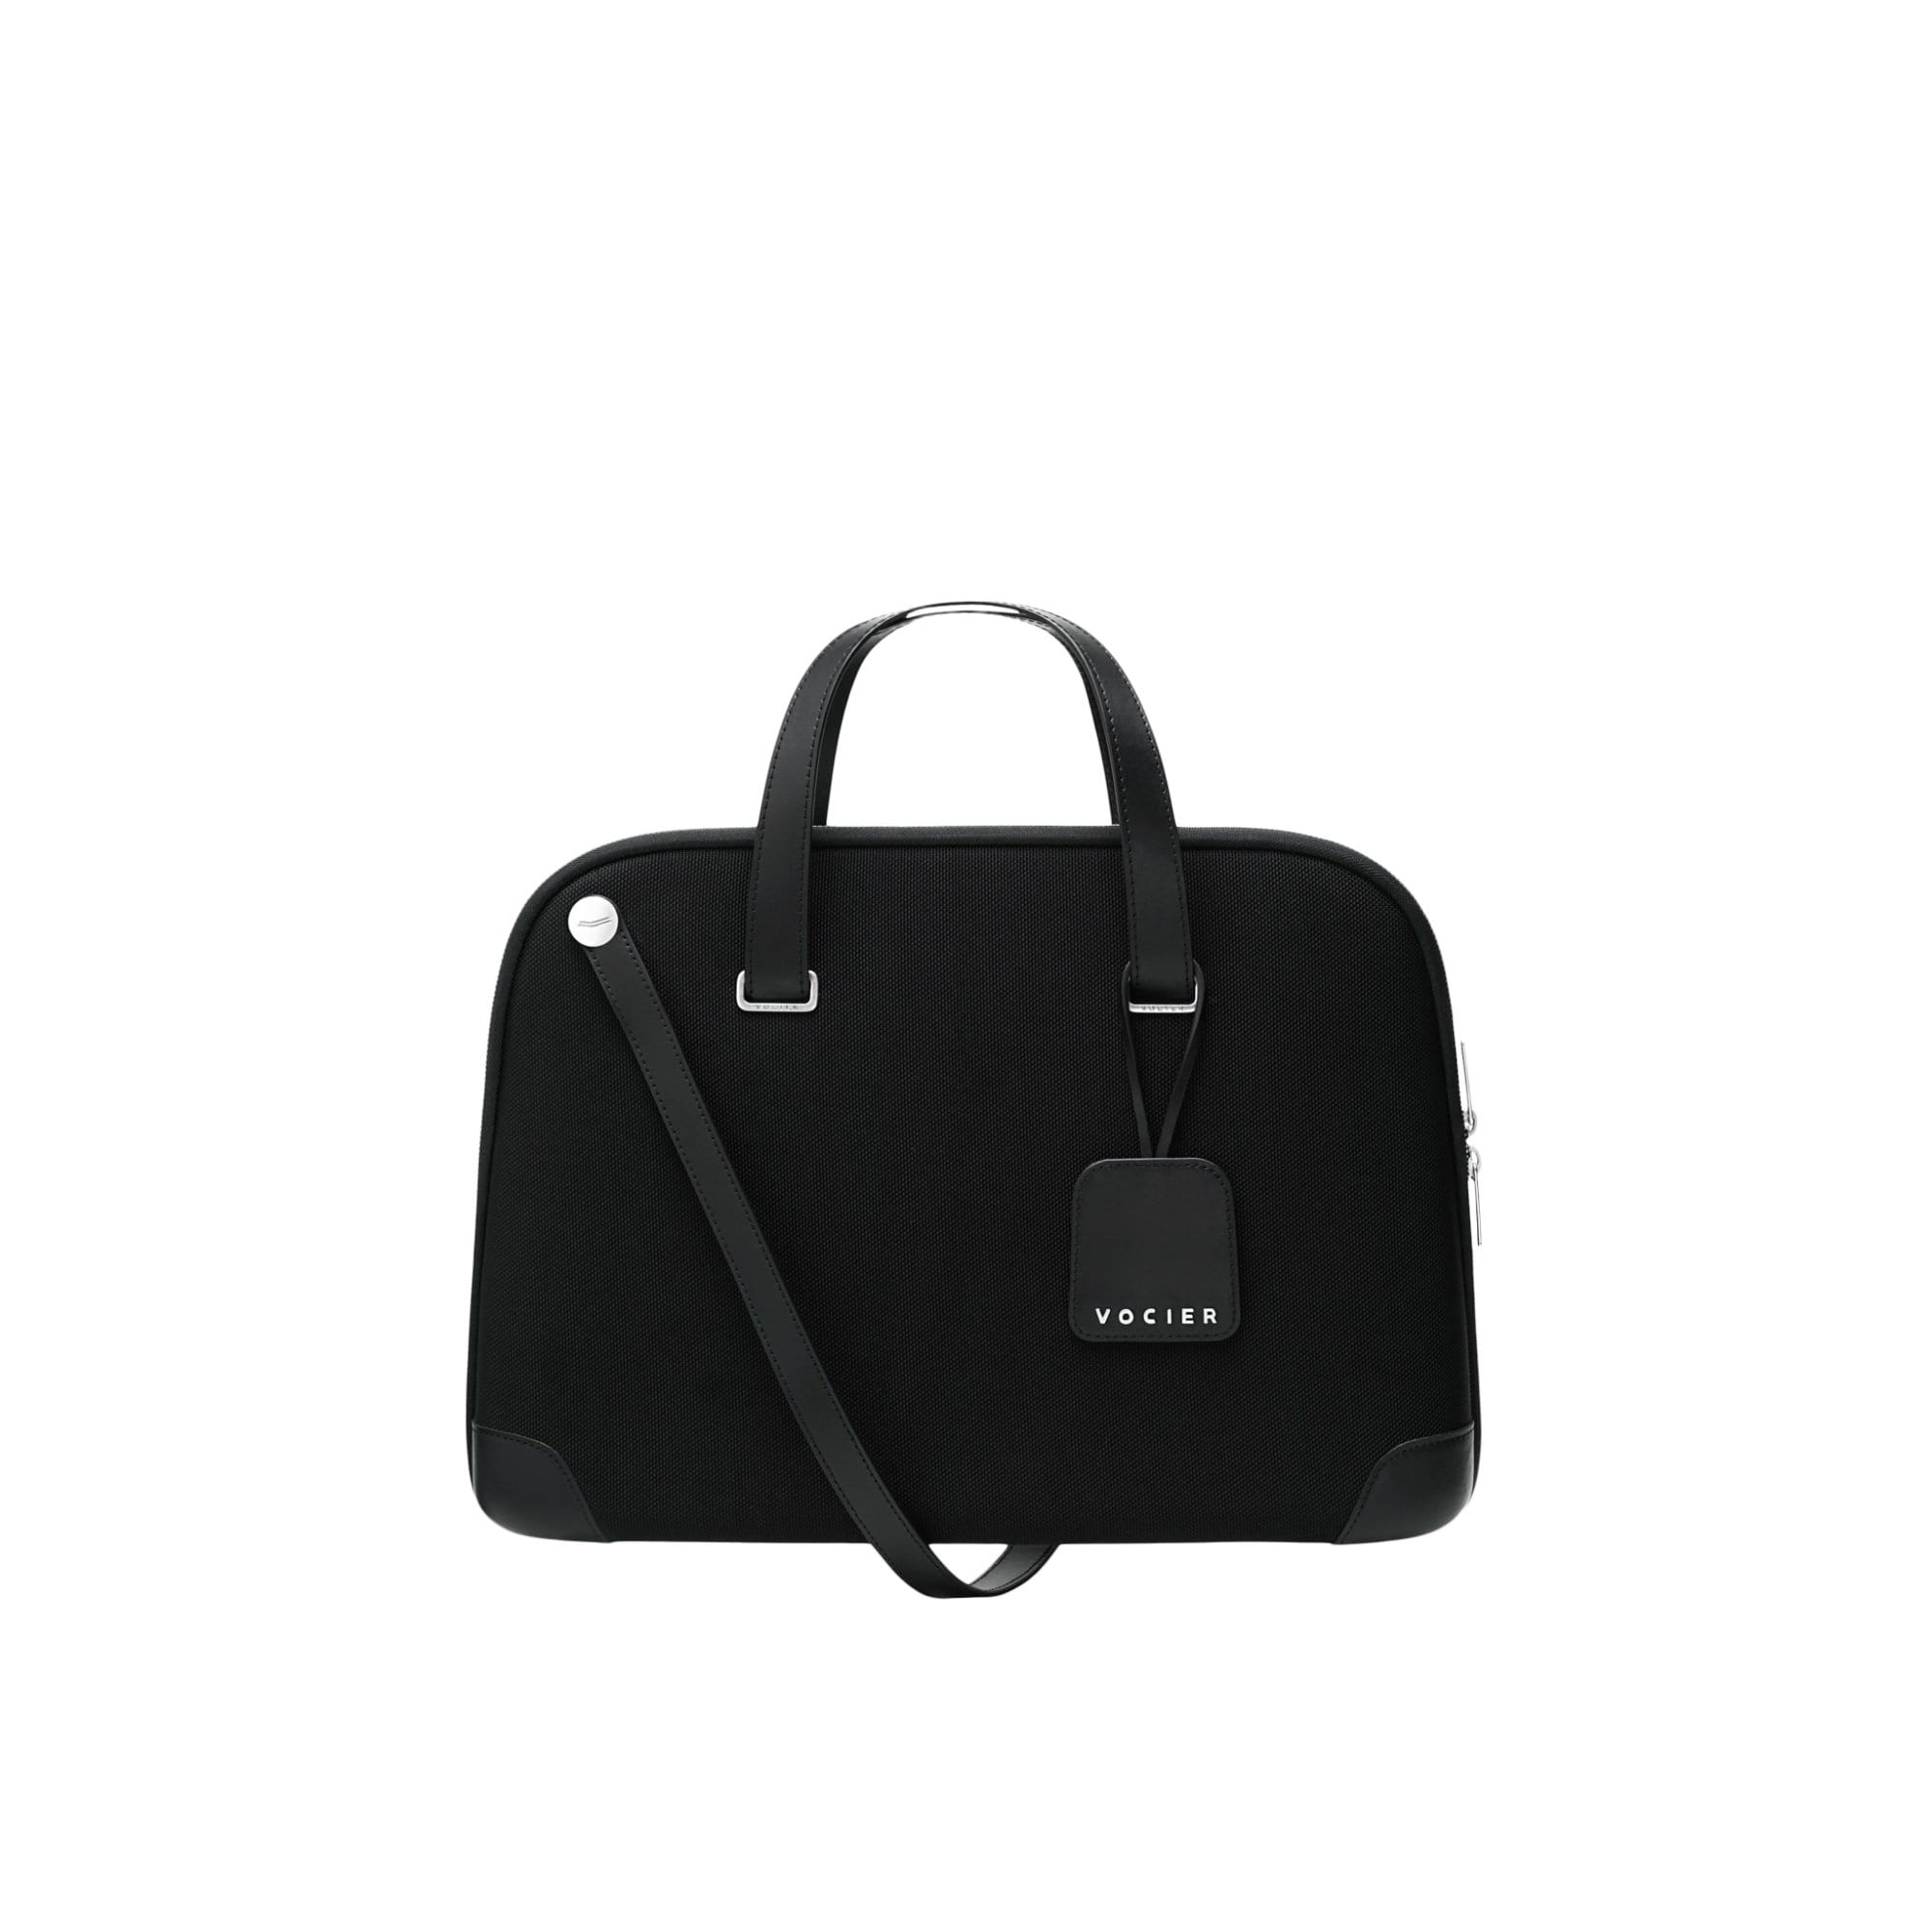 Vocier Accessories Avant Work Bag